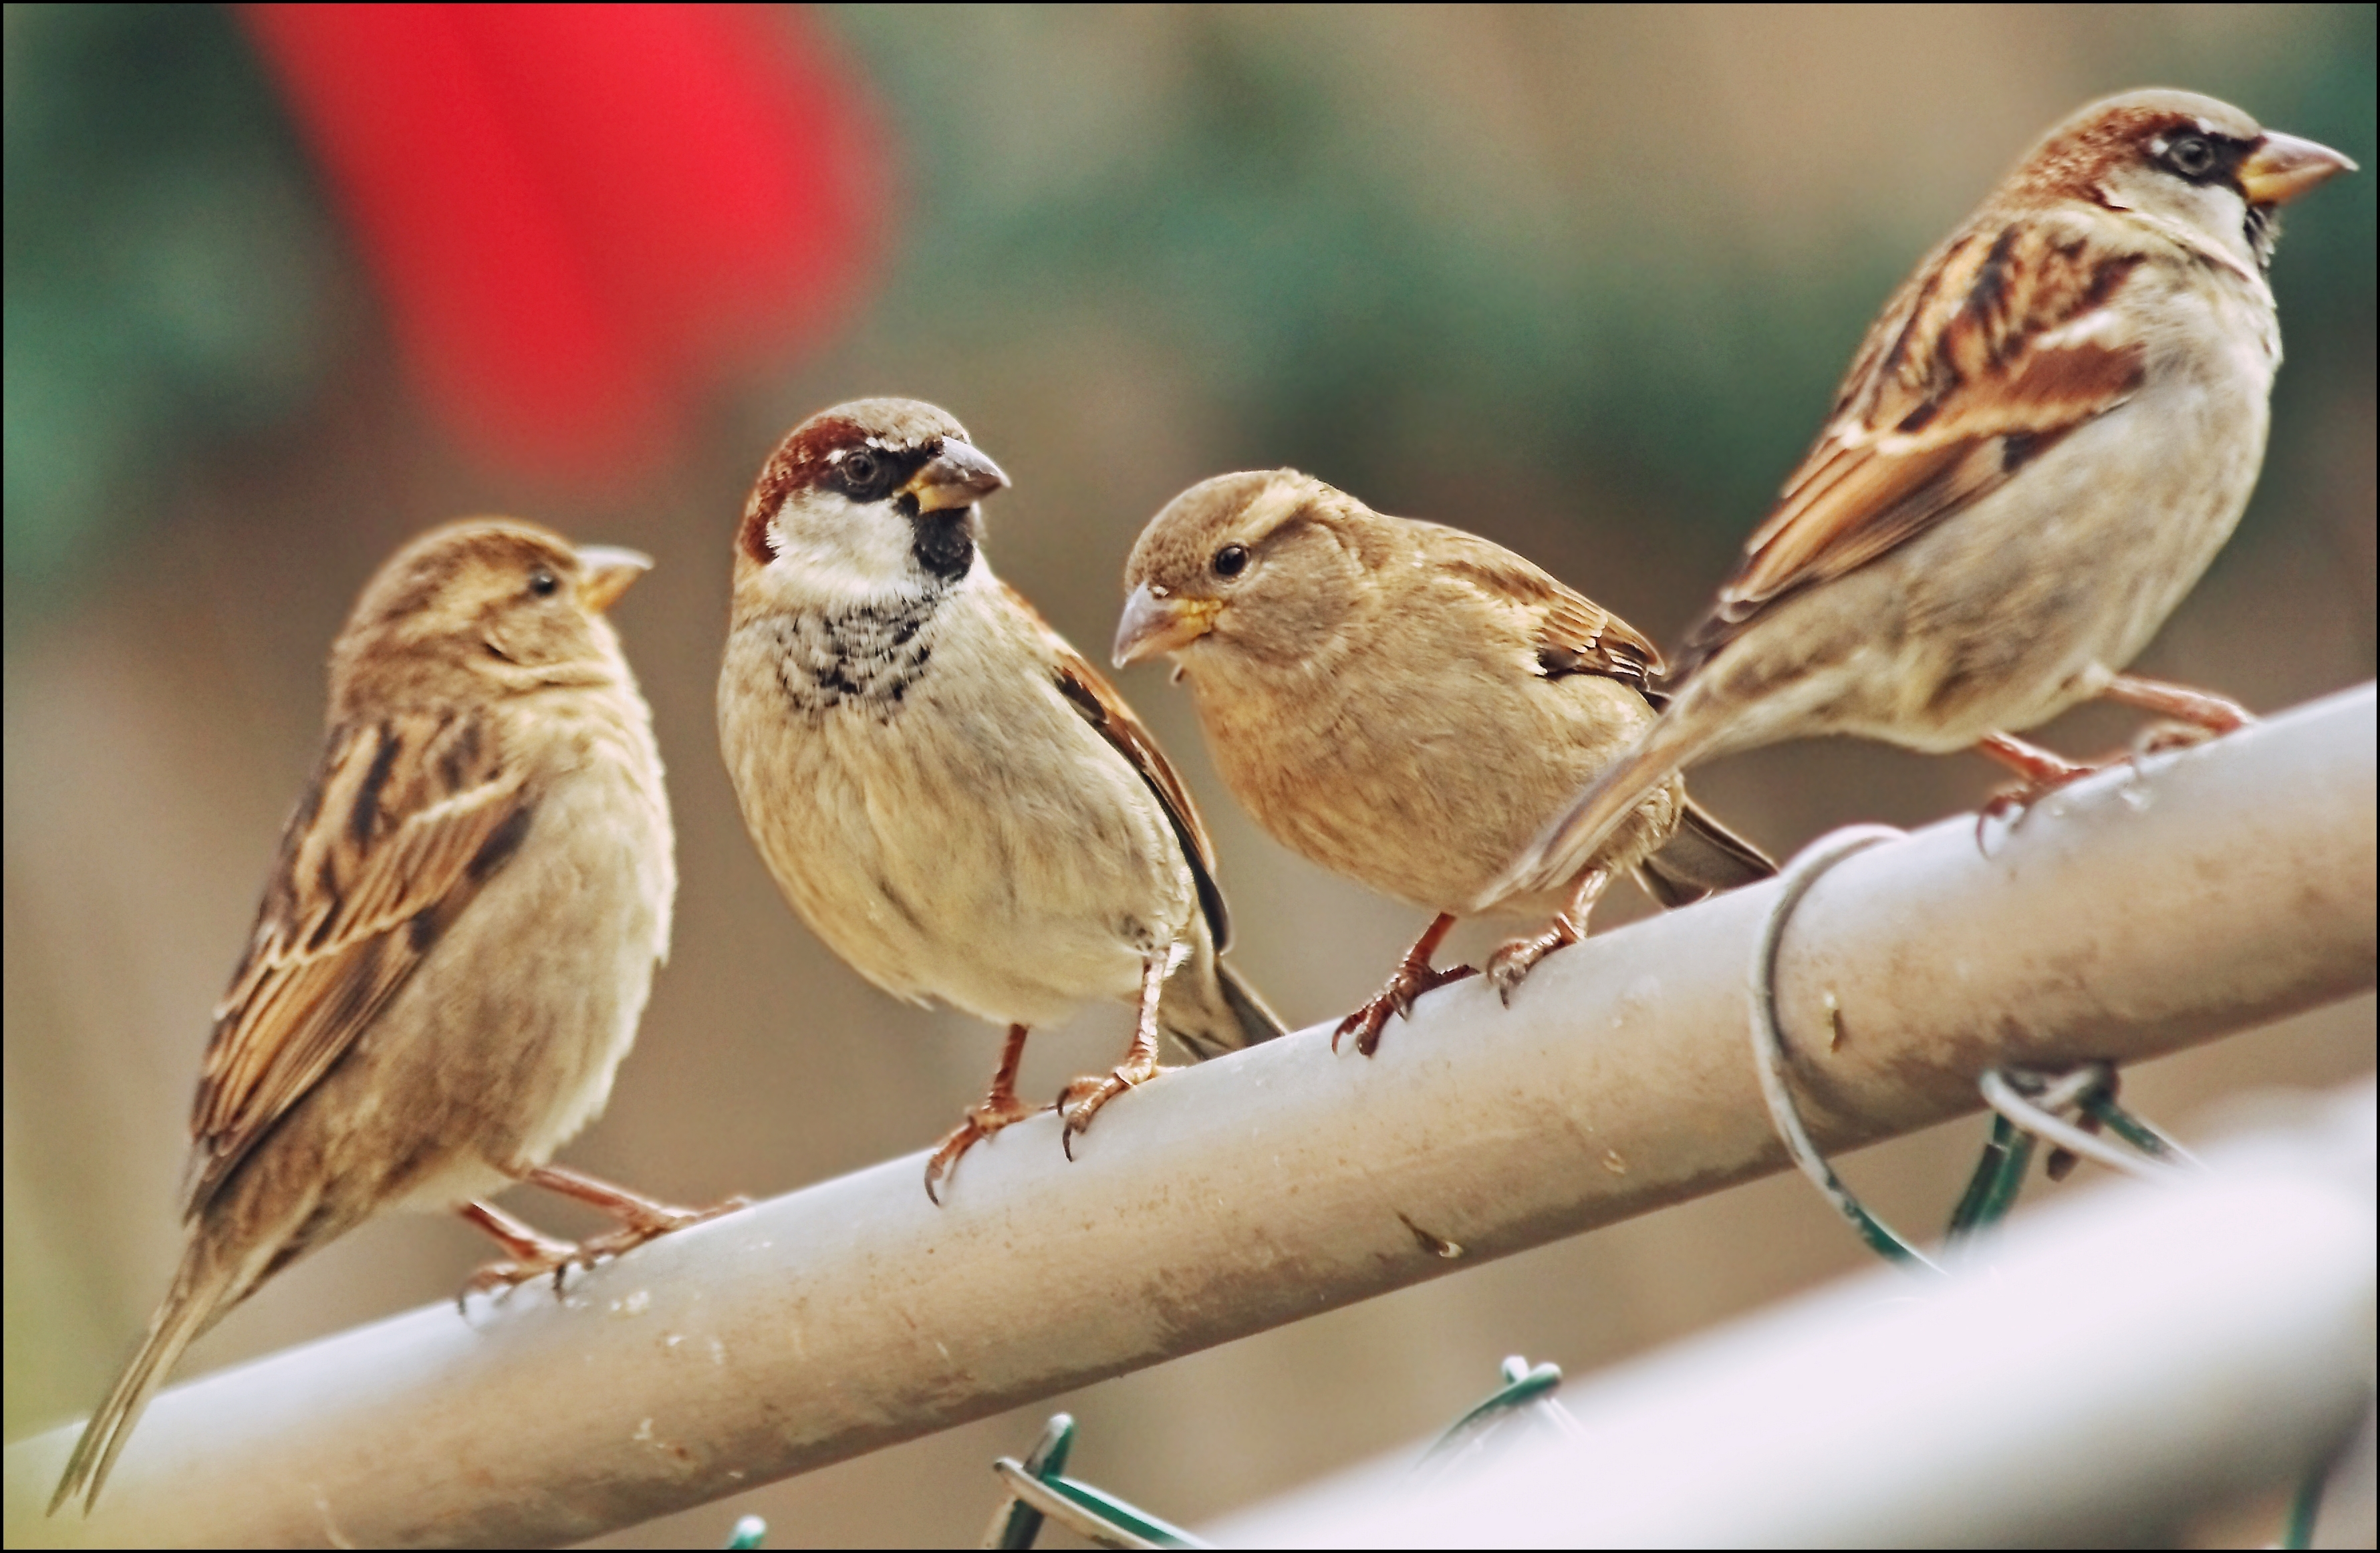 No Sun...So, So Shots Without. light, sun, canon, no, low, sparrows, 60d, testingmyeditingskillsugh. buy photo